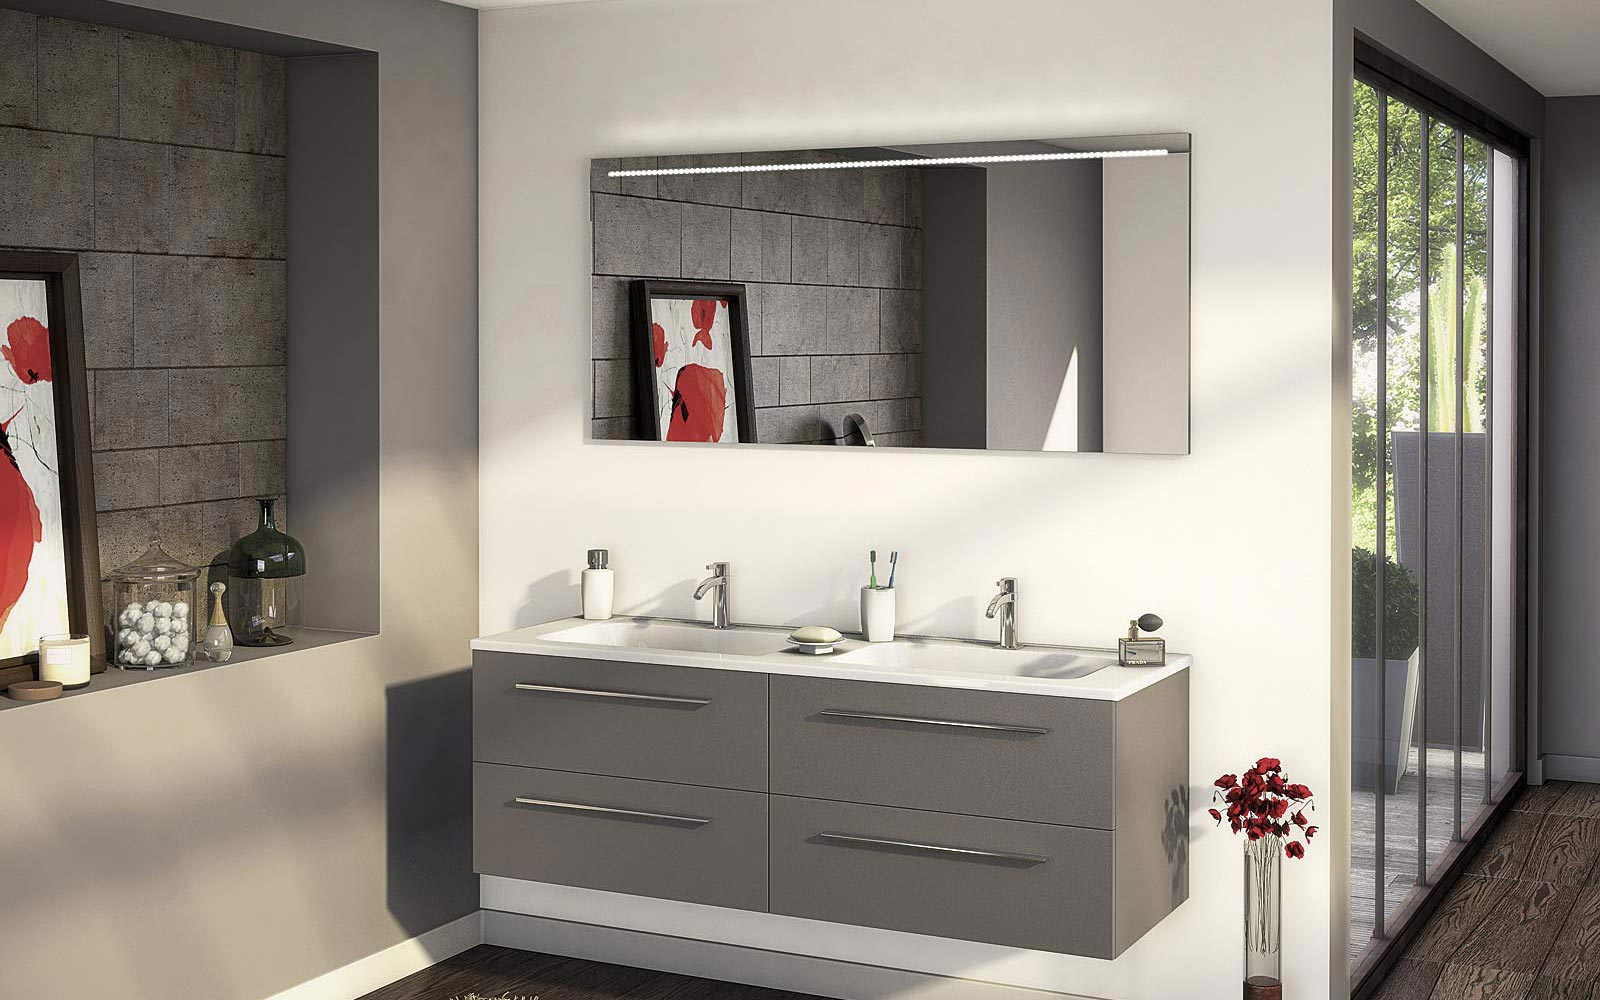 Meuble vasque cedeo for Agencement salle de bain 8m2